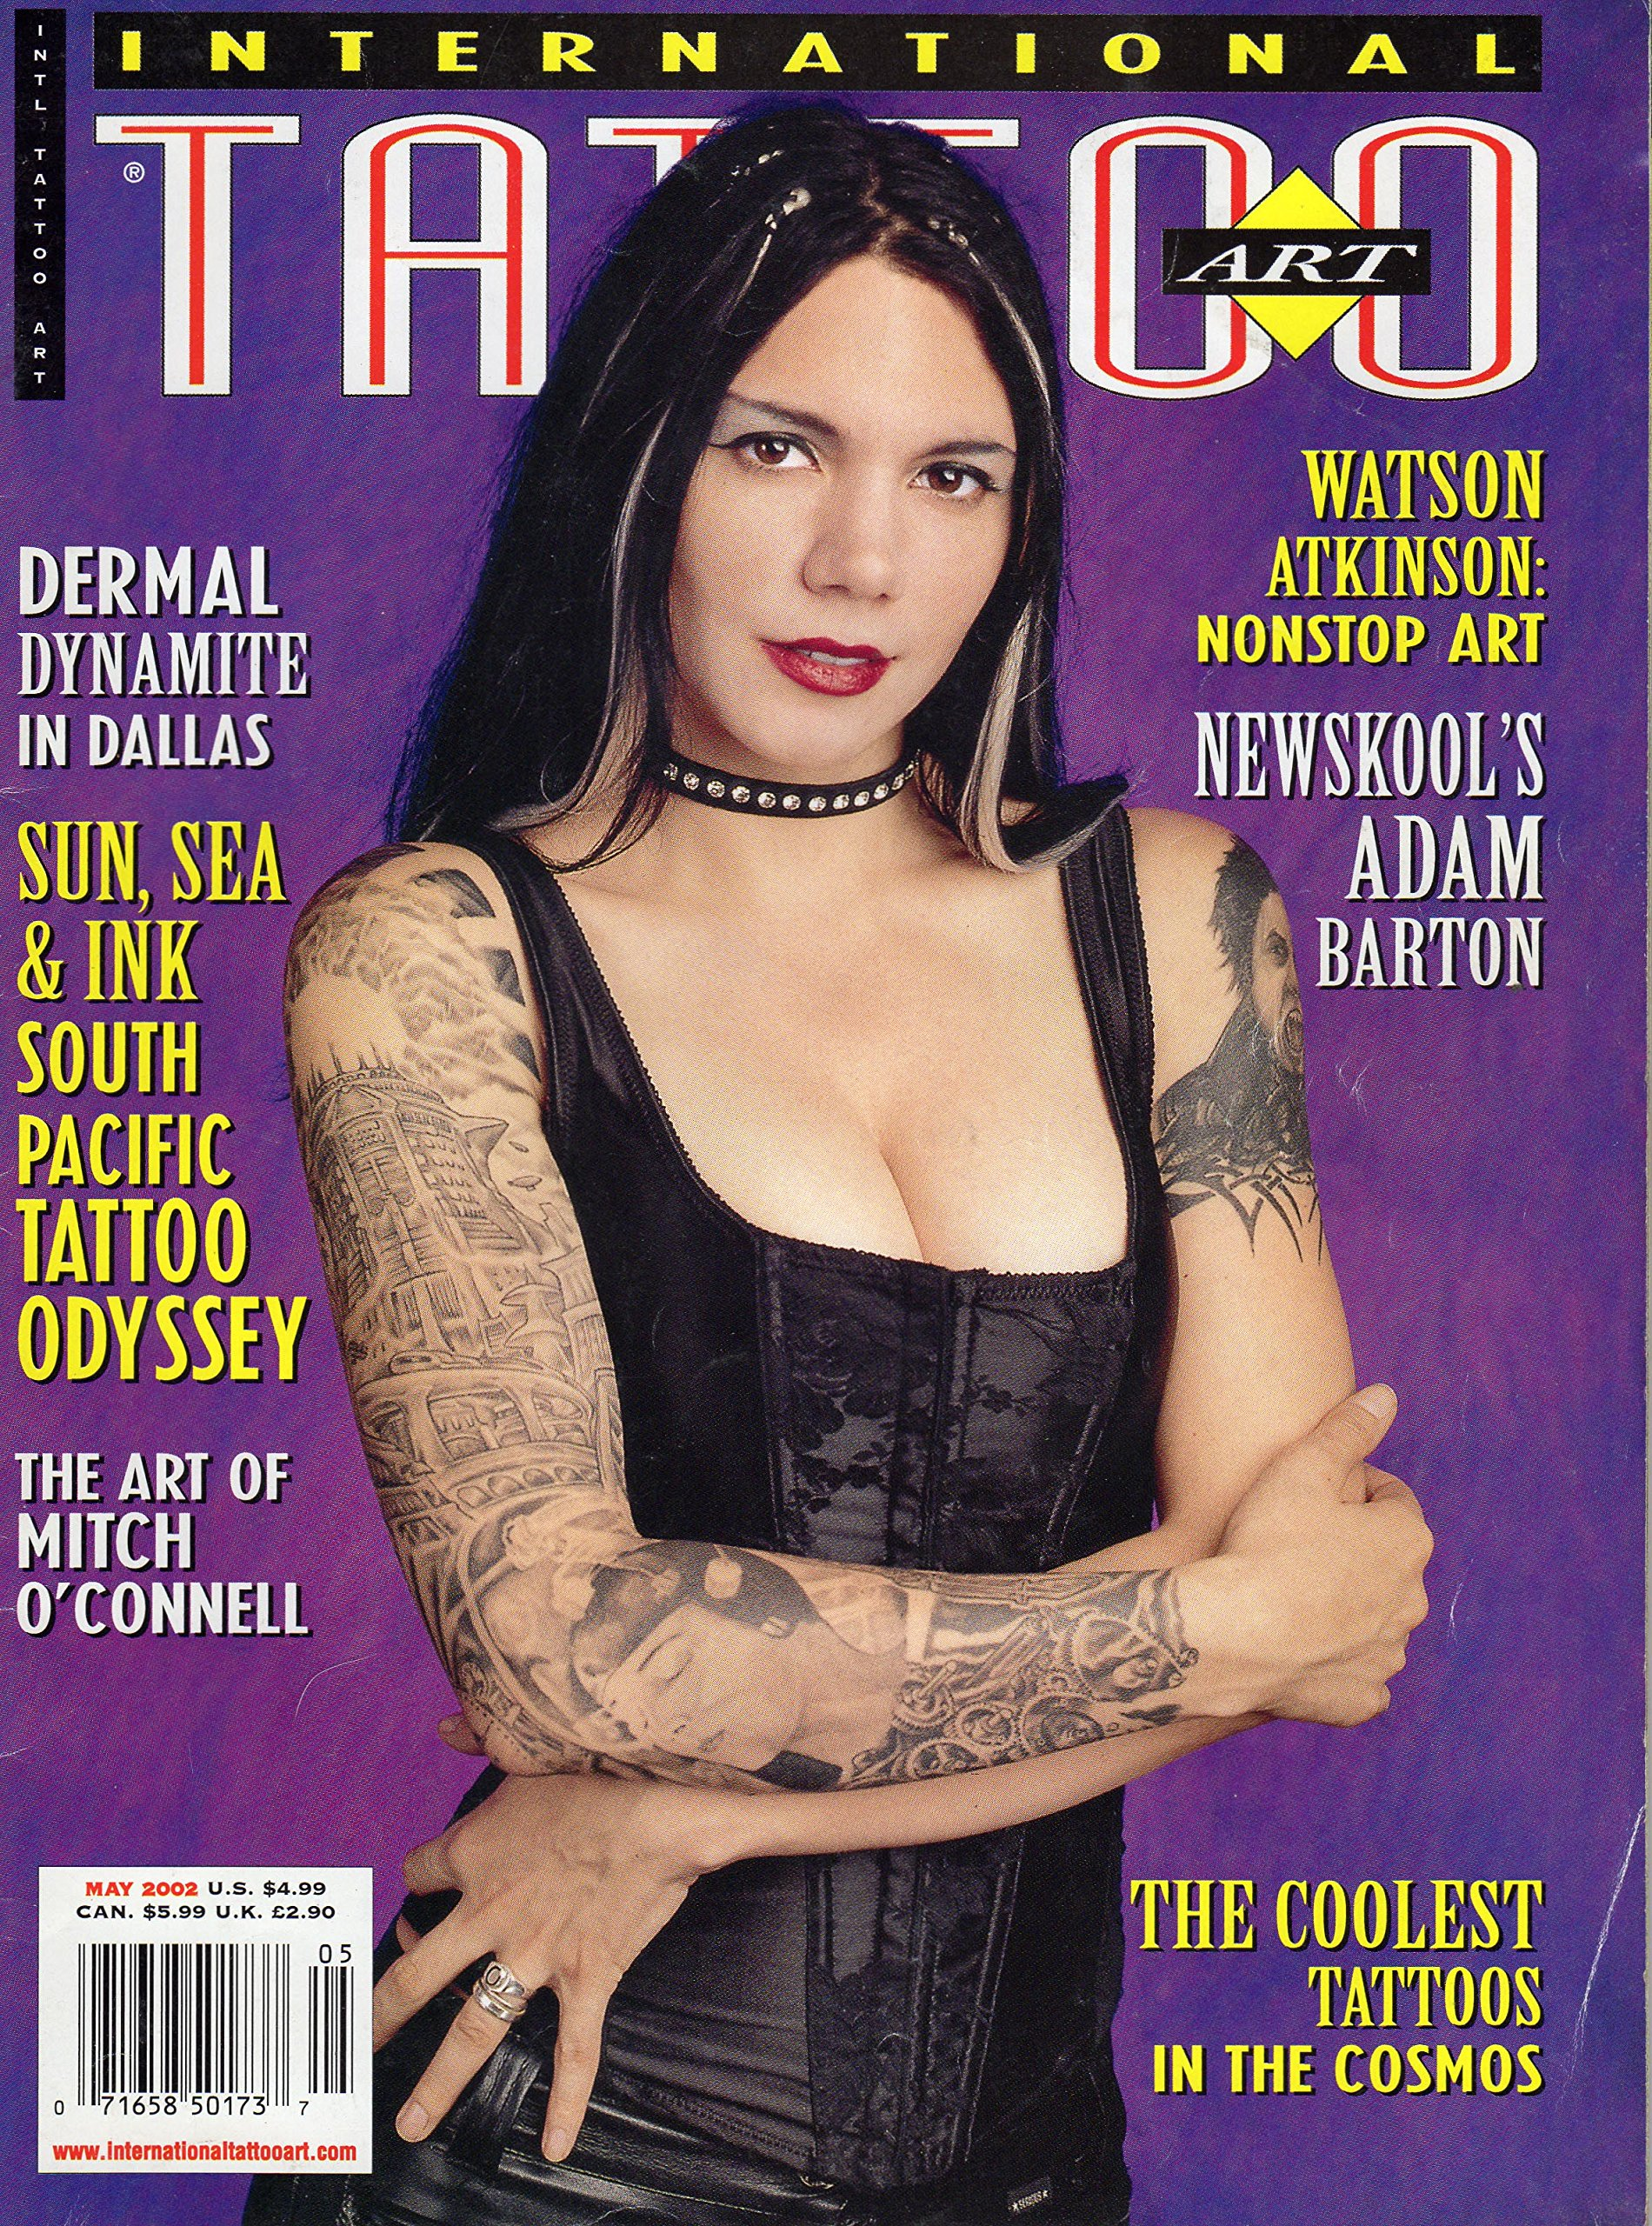 International Tattoo Art Magazine May 2002 Dermal Dynamite In Dallas South Pacific Tattoo Odyssey The Art Of Mitch O Connell Watson Atkinson Nonstop Art Newskool S Adam Barton Chris Pfouts Amazon Com Books